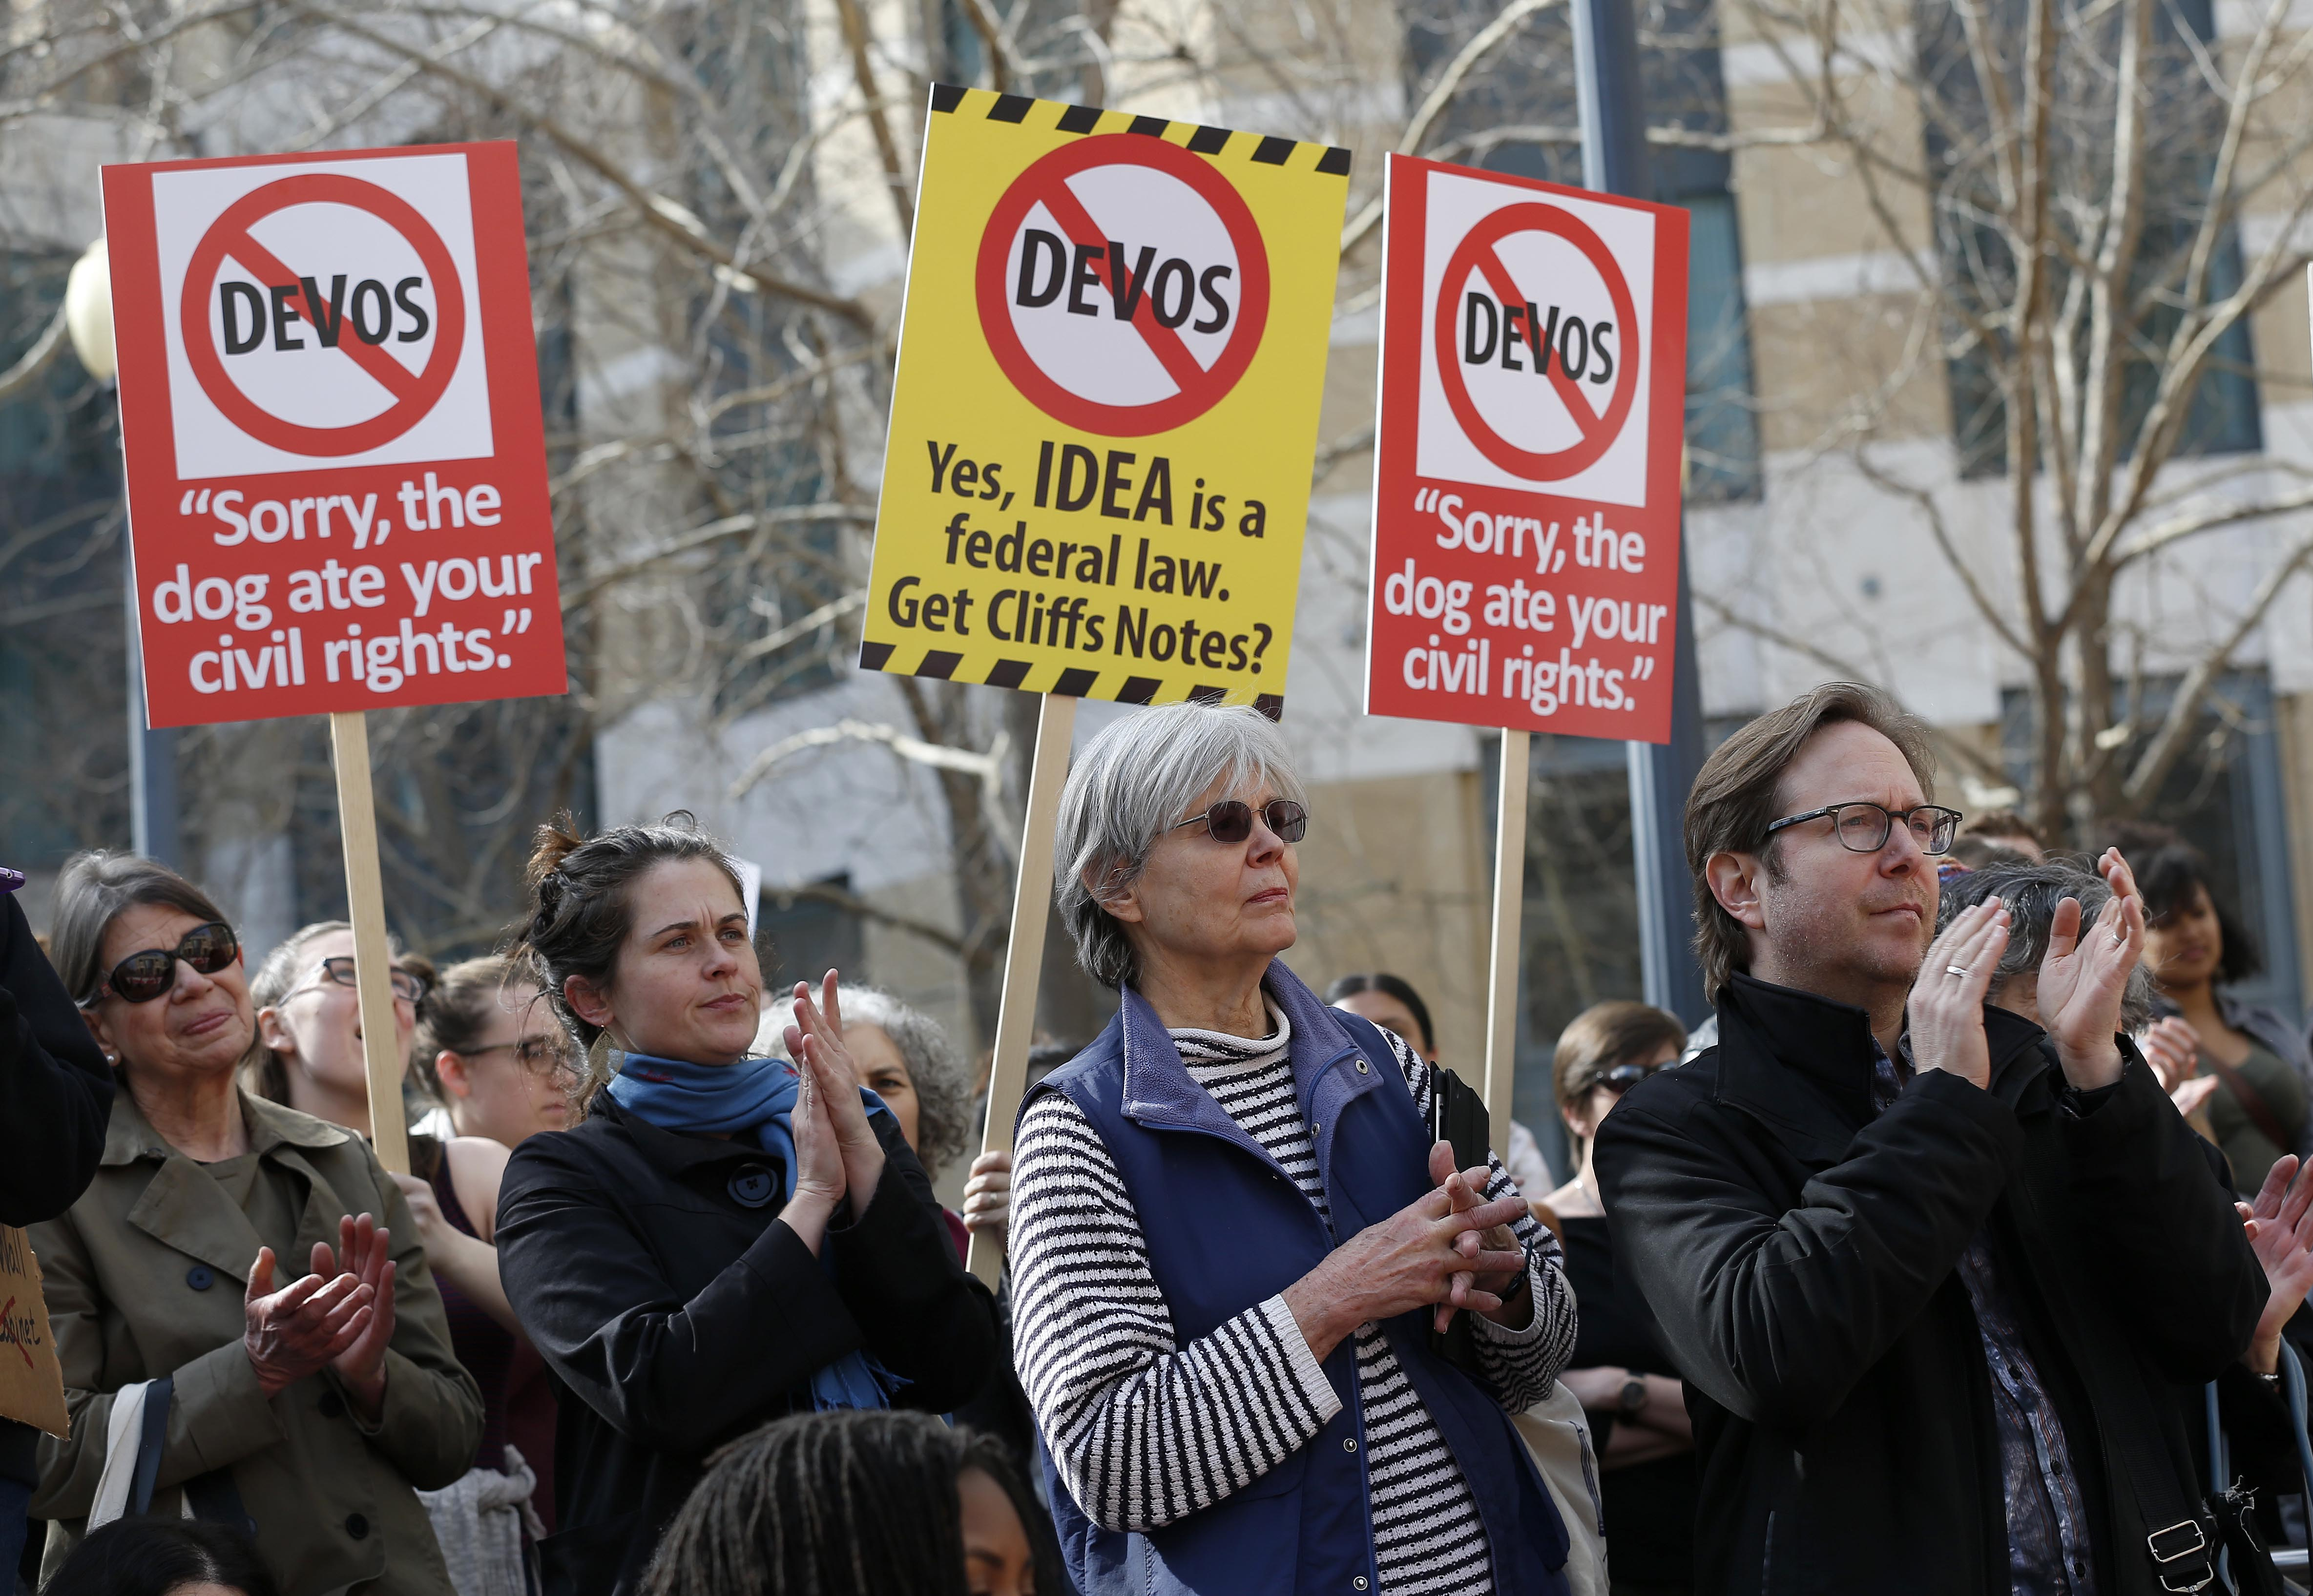 Image result for photos of rallies v devos